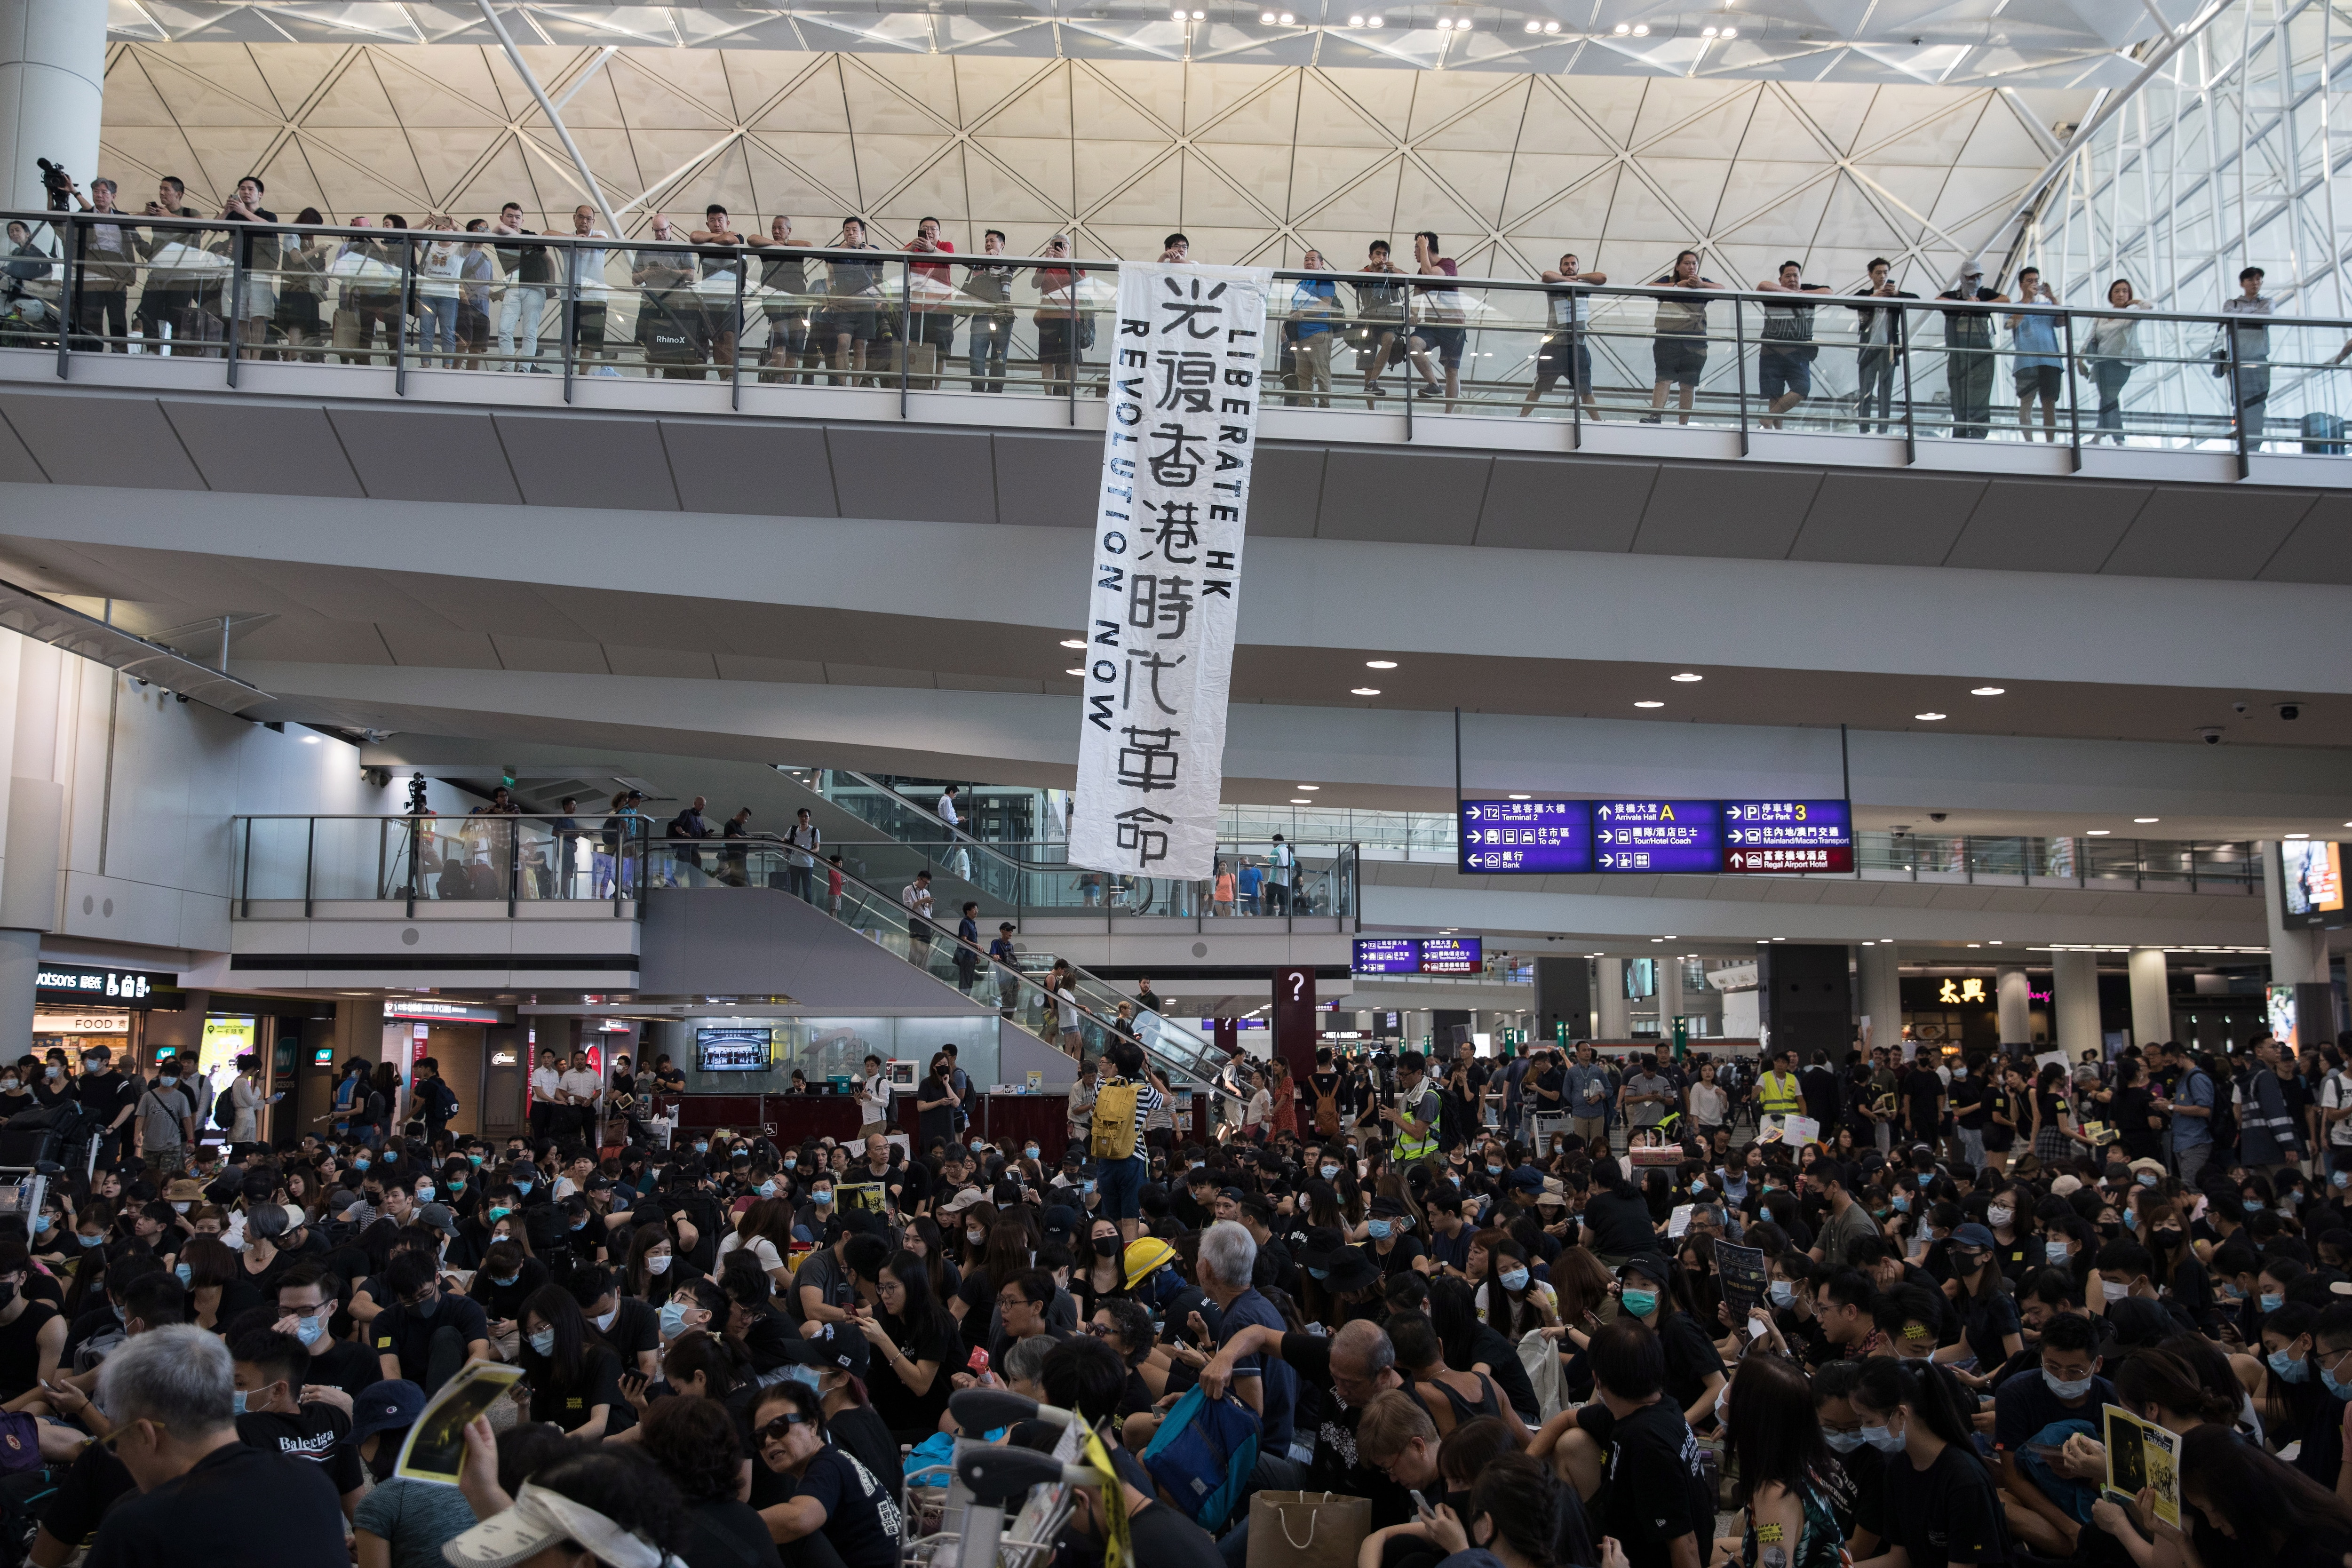 HK protesters defy police with rallies